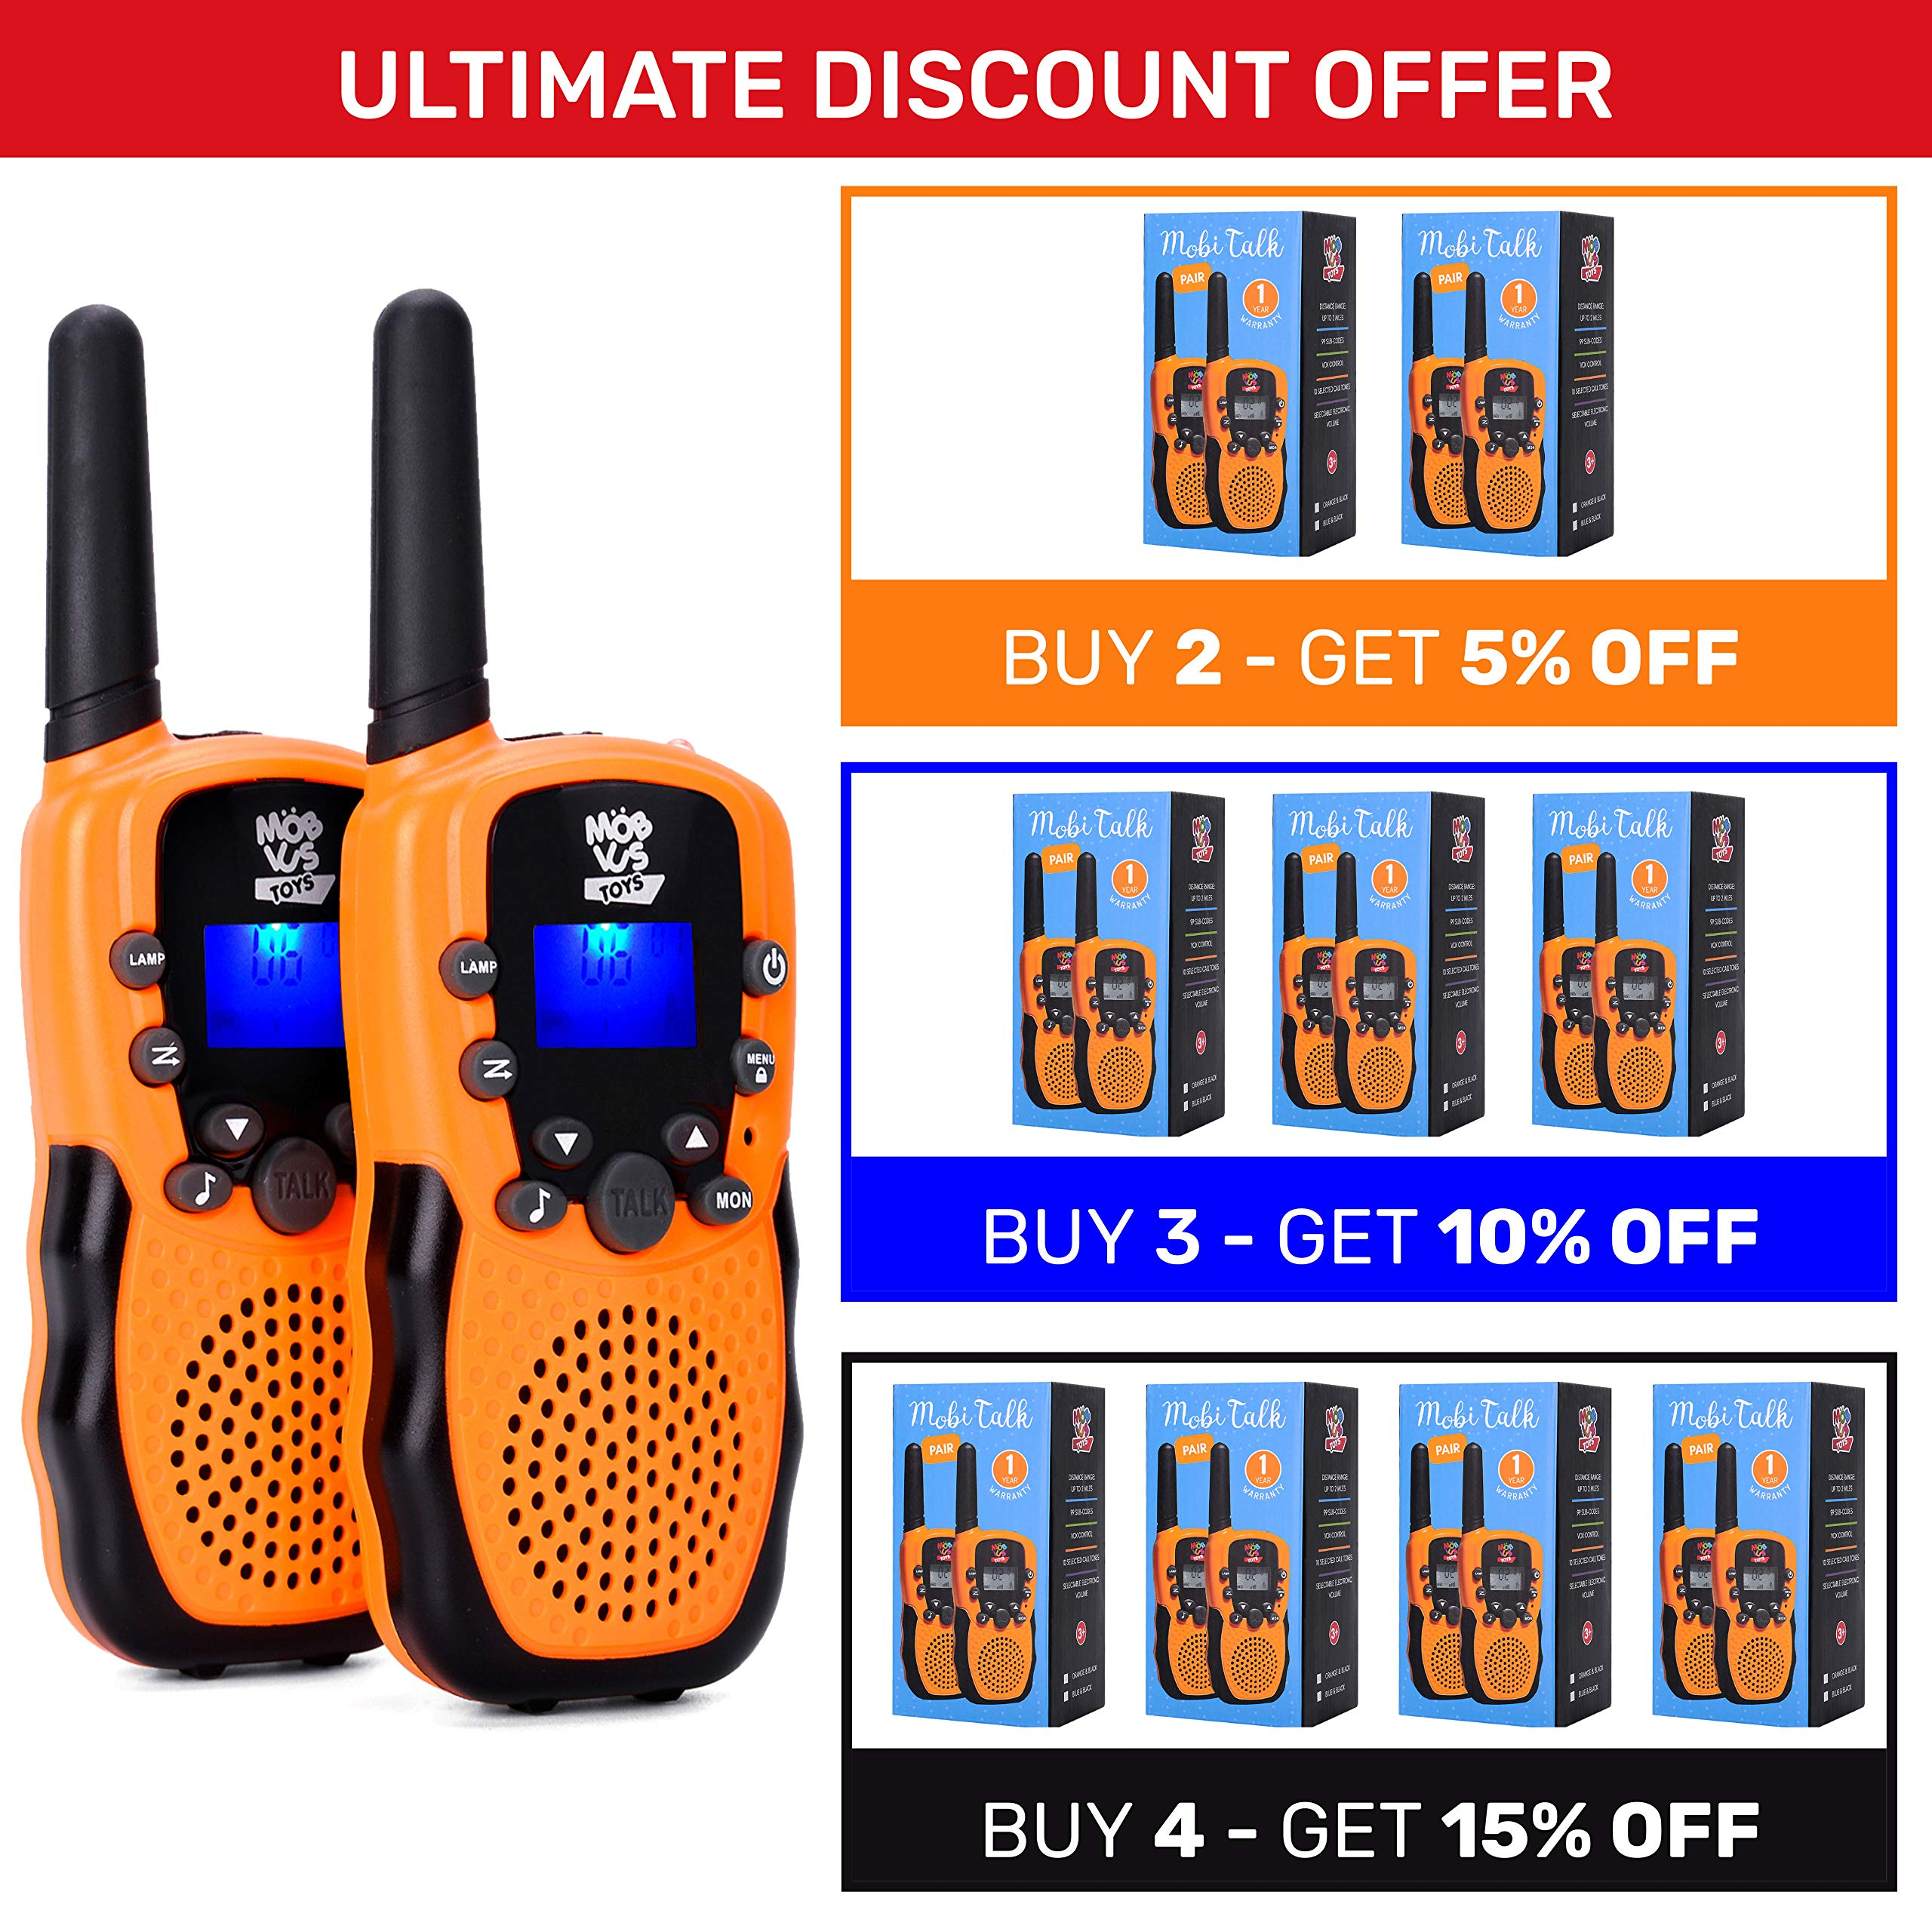 Walkie Talkies for Kids - (Vox Box) Voice Activated Walkie Talkies Toy for Kids, Two Way Radios Pair for Boys & Girls, Limited Edition Color Best Gift Long Range 3+ Miles Children's Walkie Talkie Set by MOBIUS Toys (Image #7)